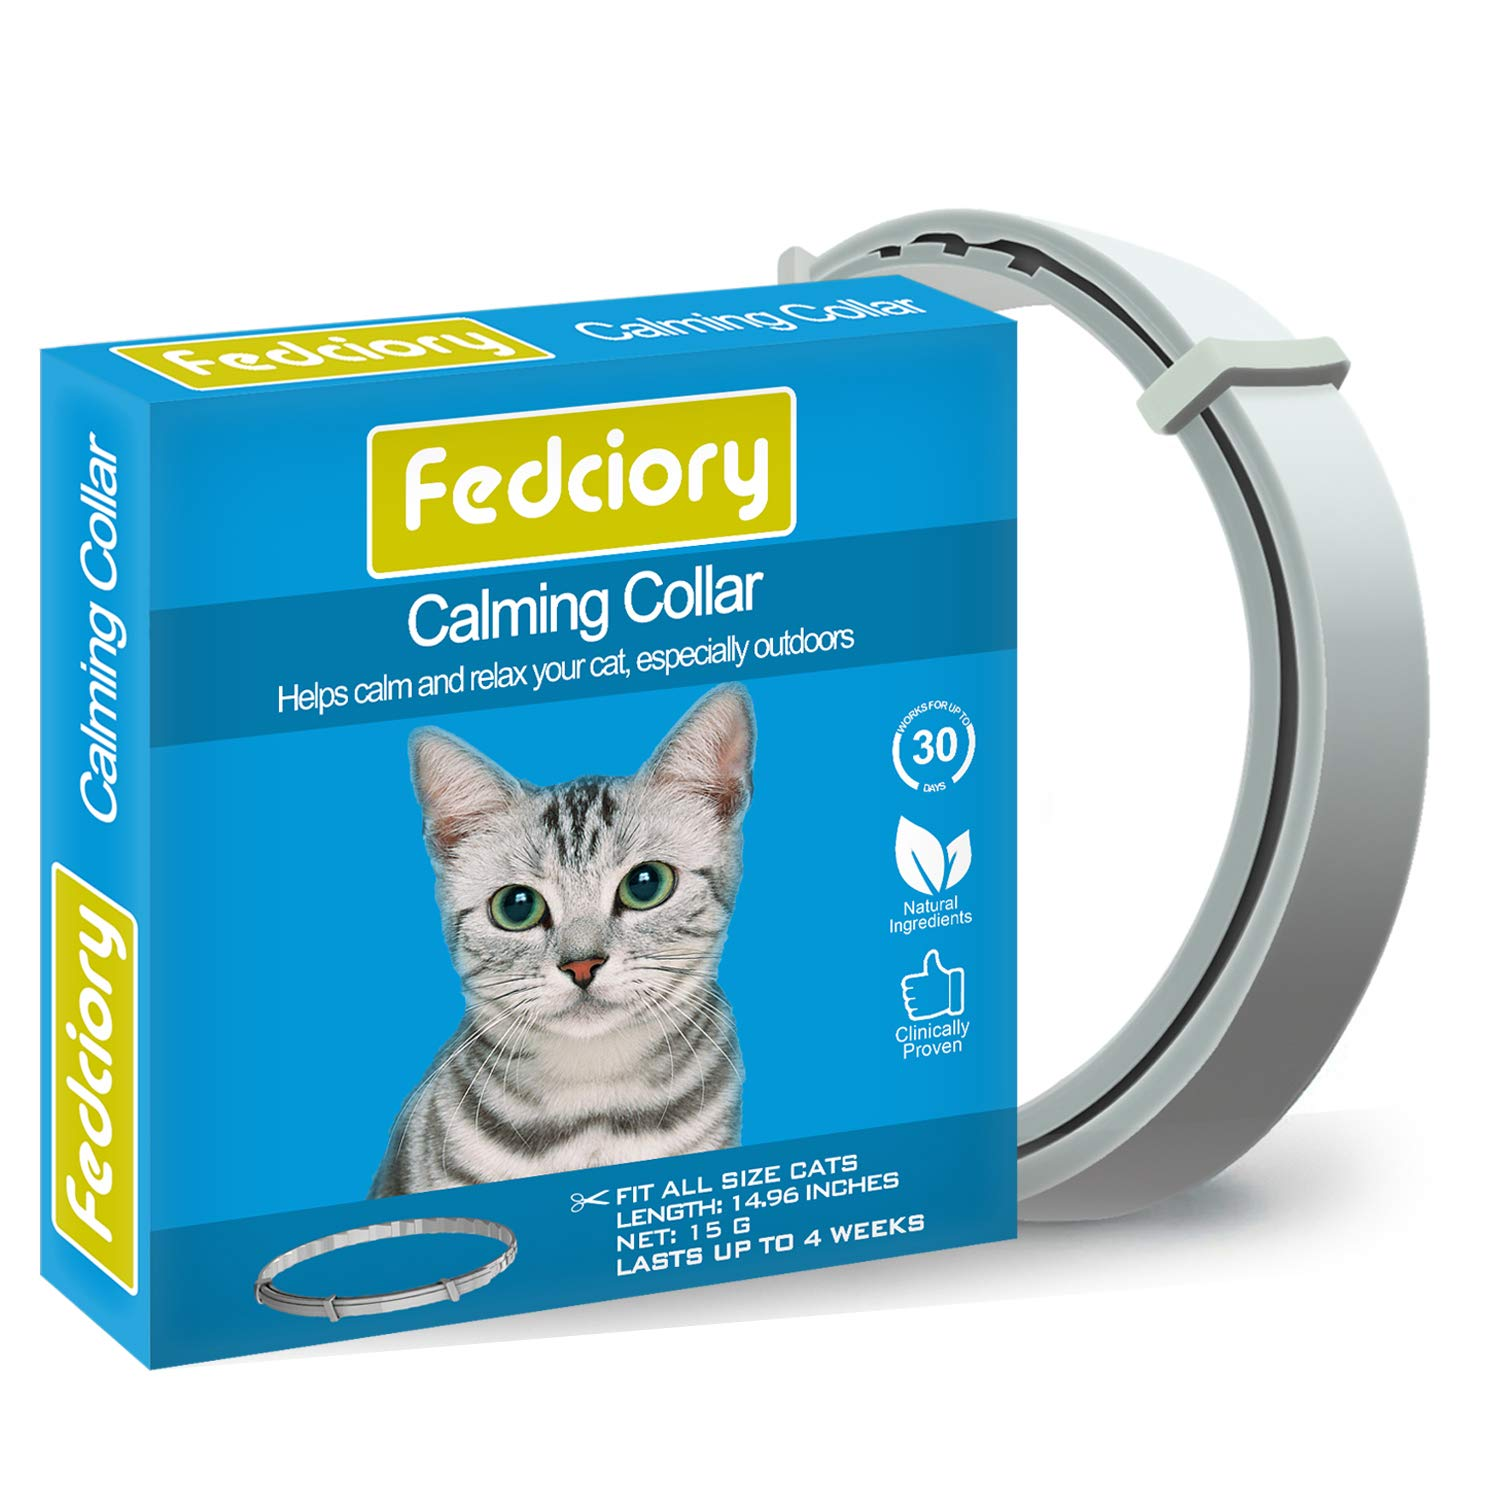 Calming Collar for Cats (Fedciory) Image